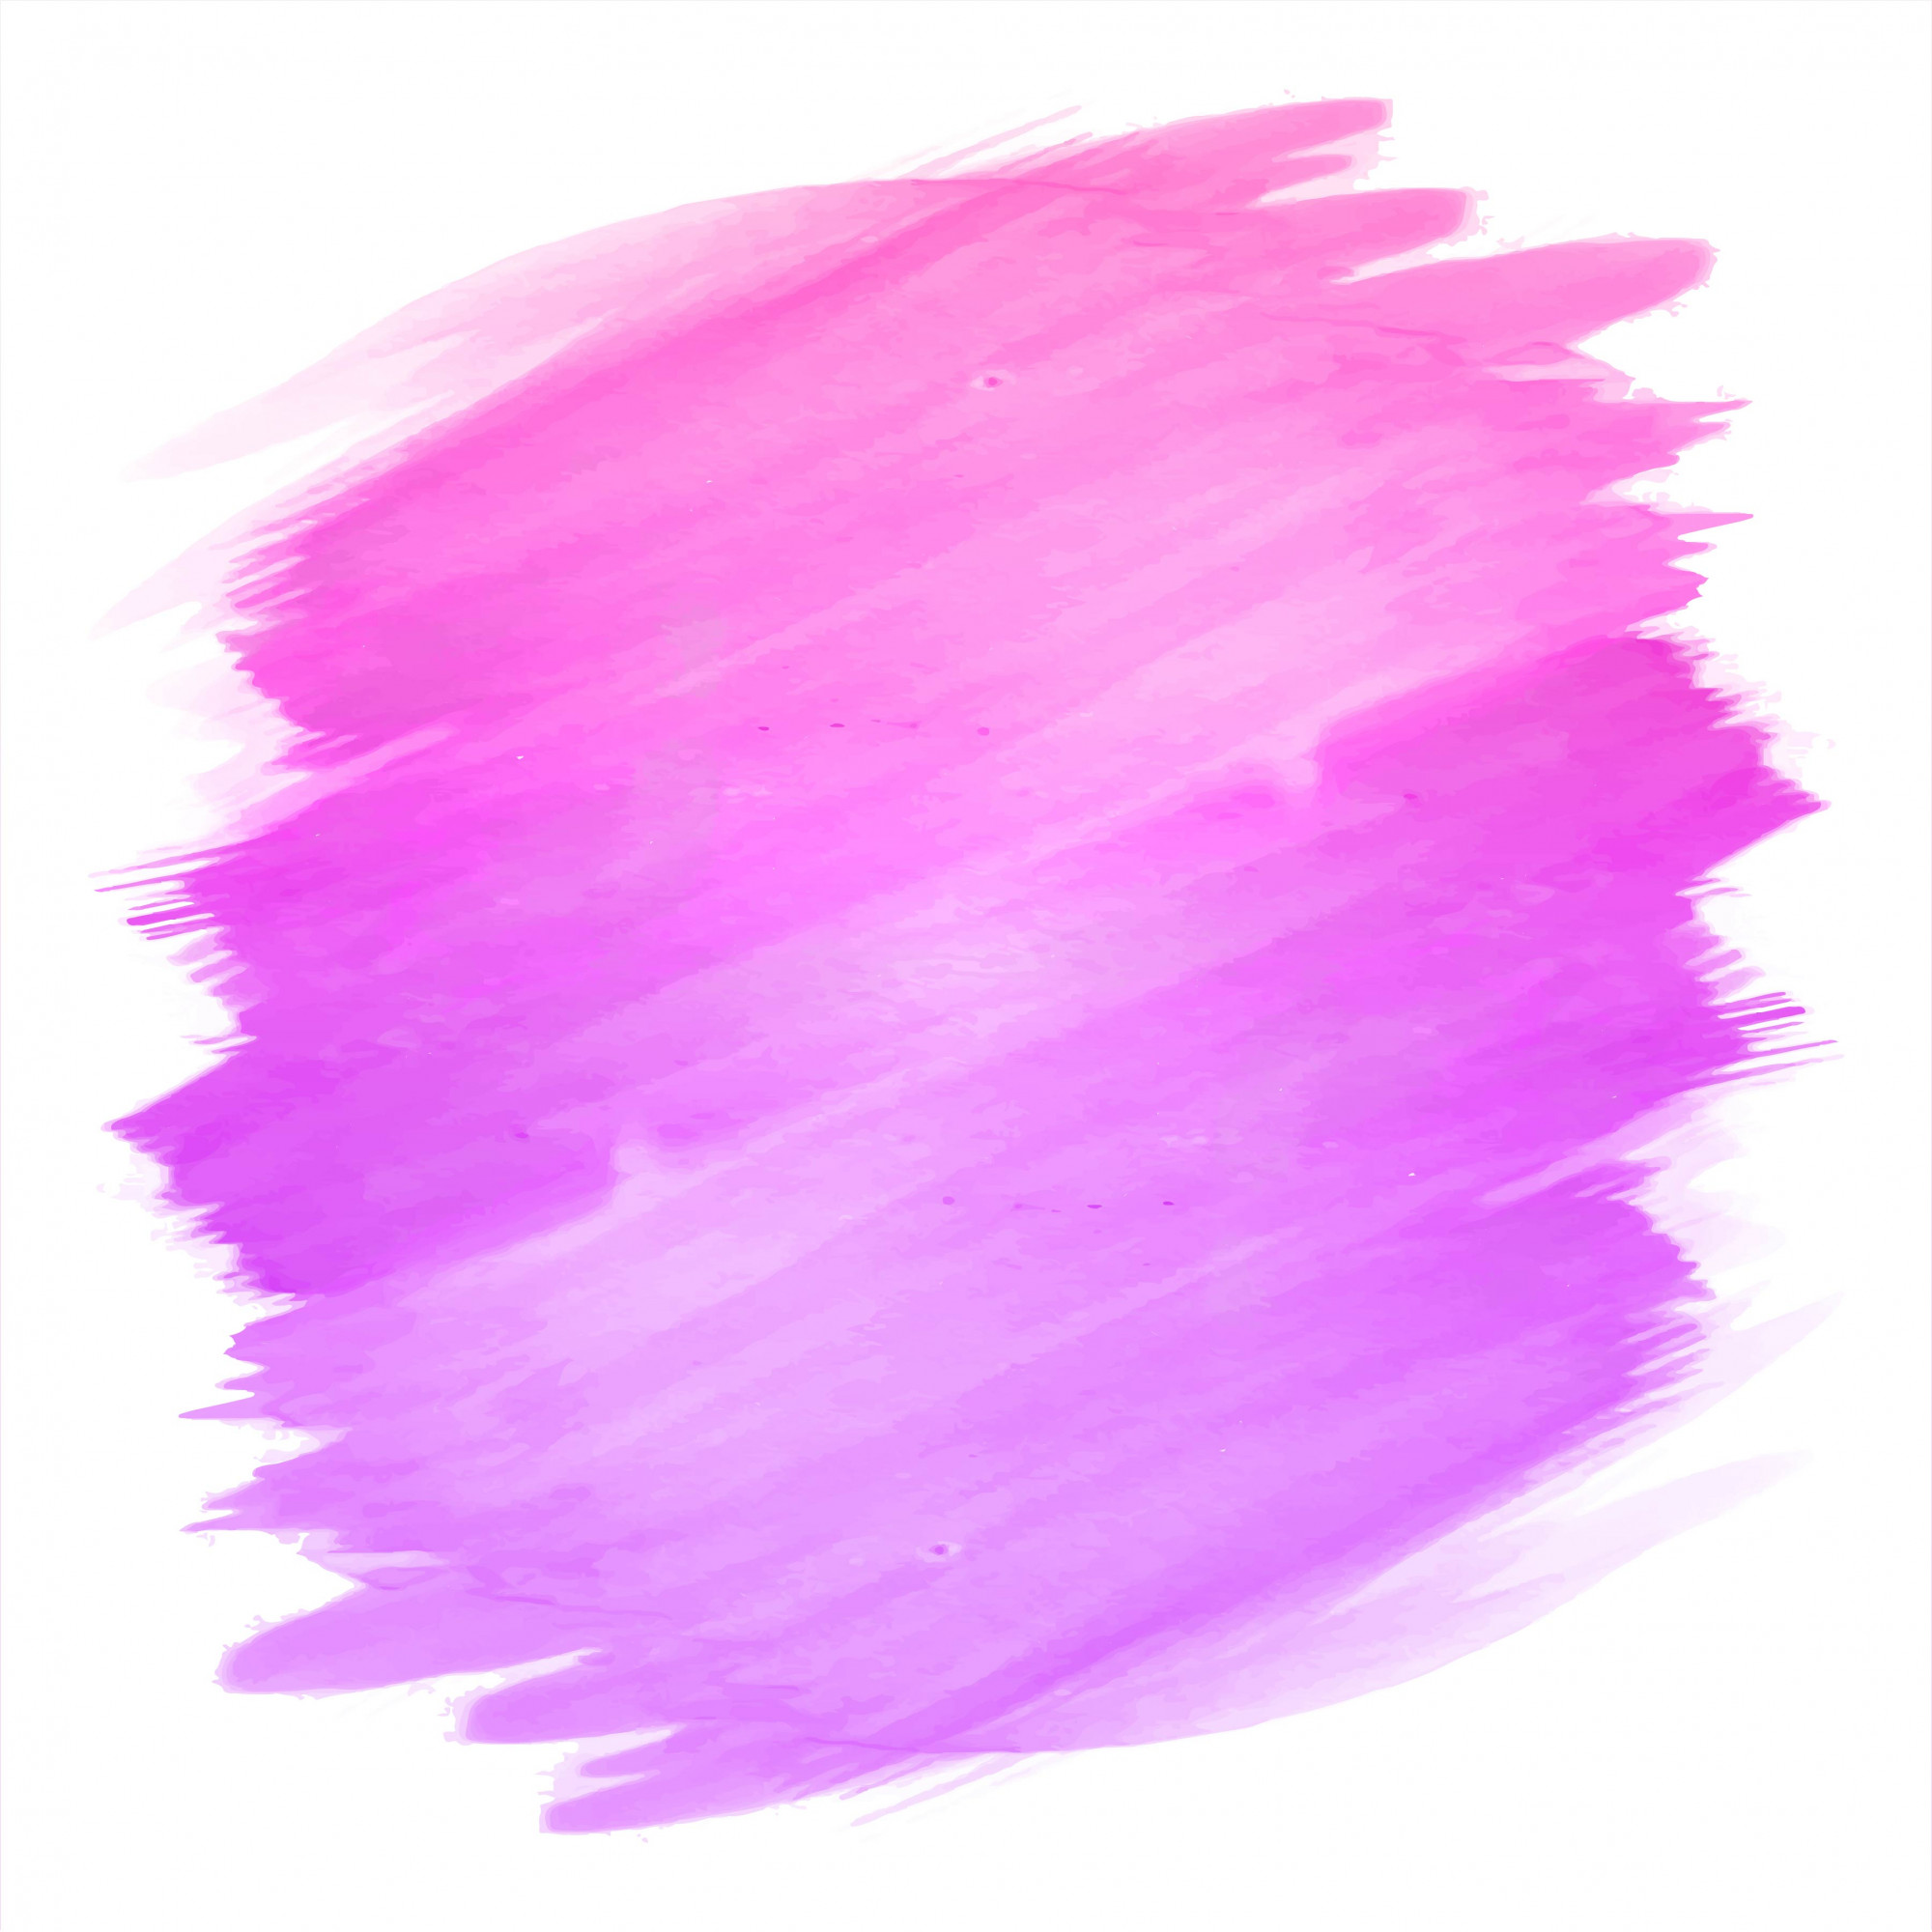 Abstract hand draw stroke pink watercolor design